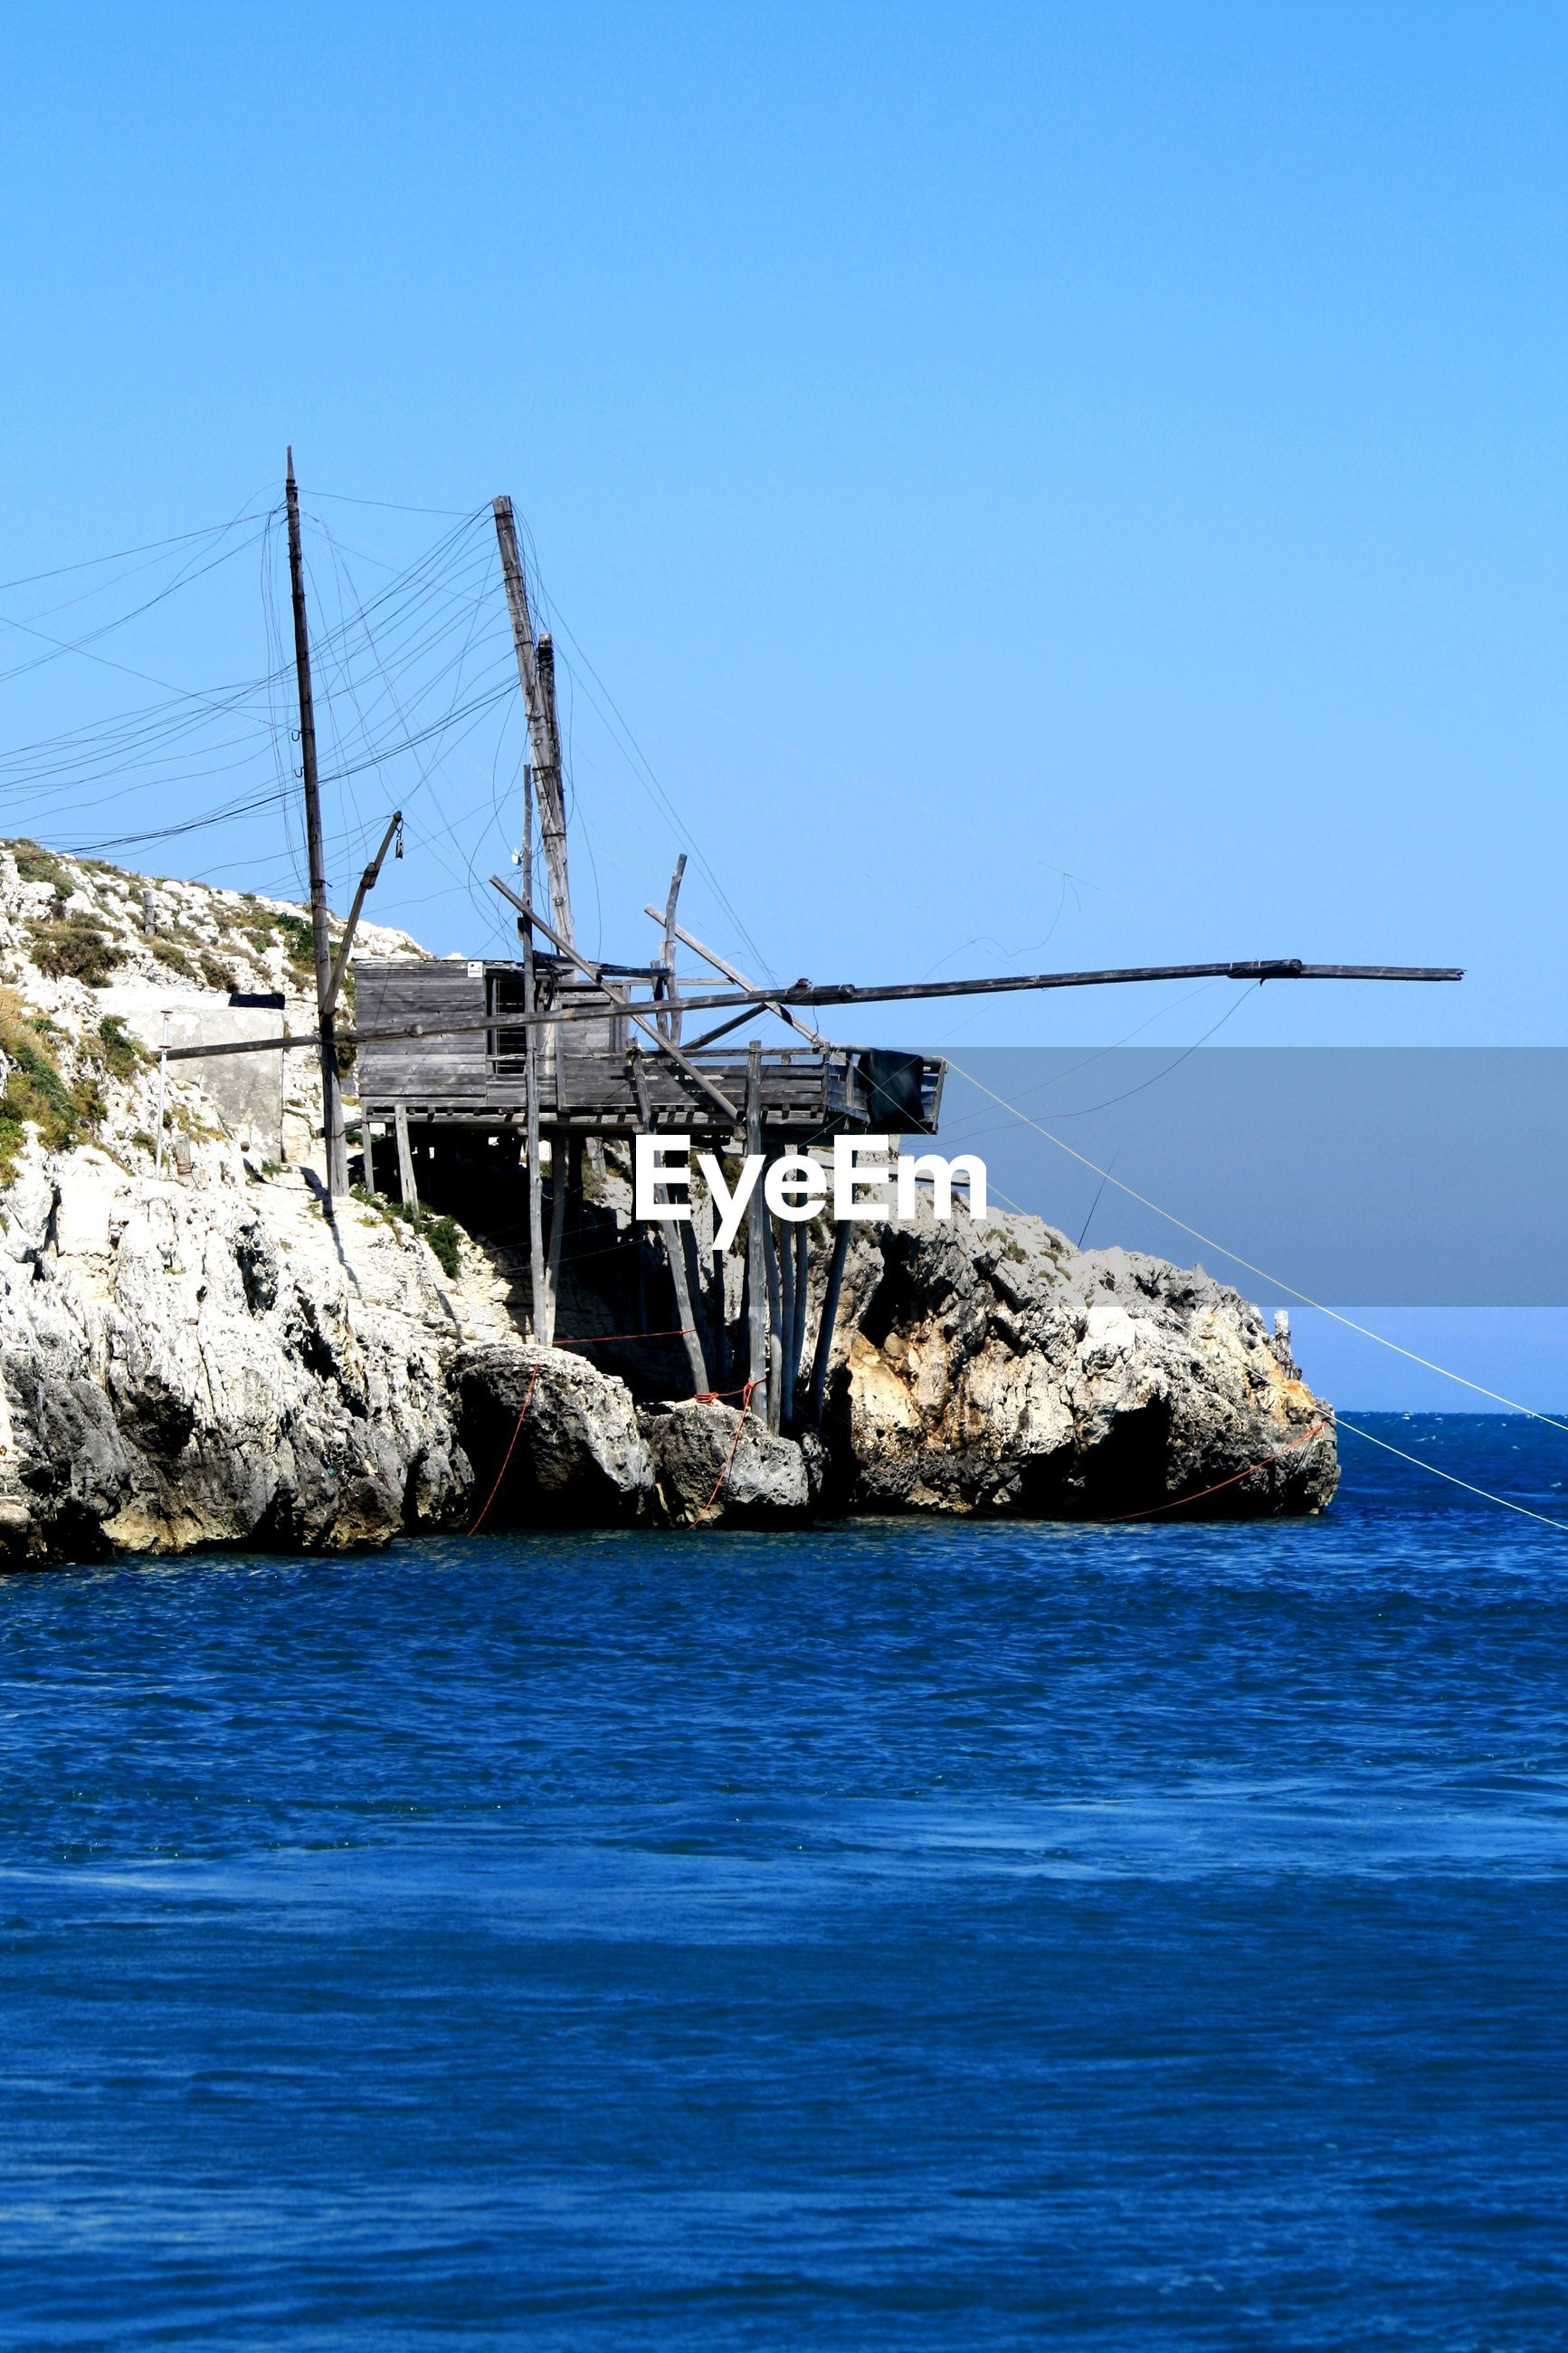 VIEW OF SAILBOAT IN SEA AGAINST CLEAR BLUE SKY